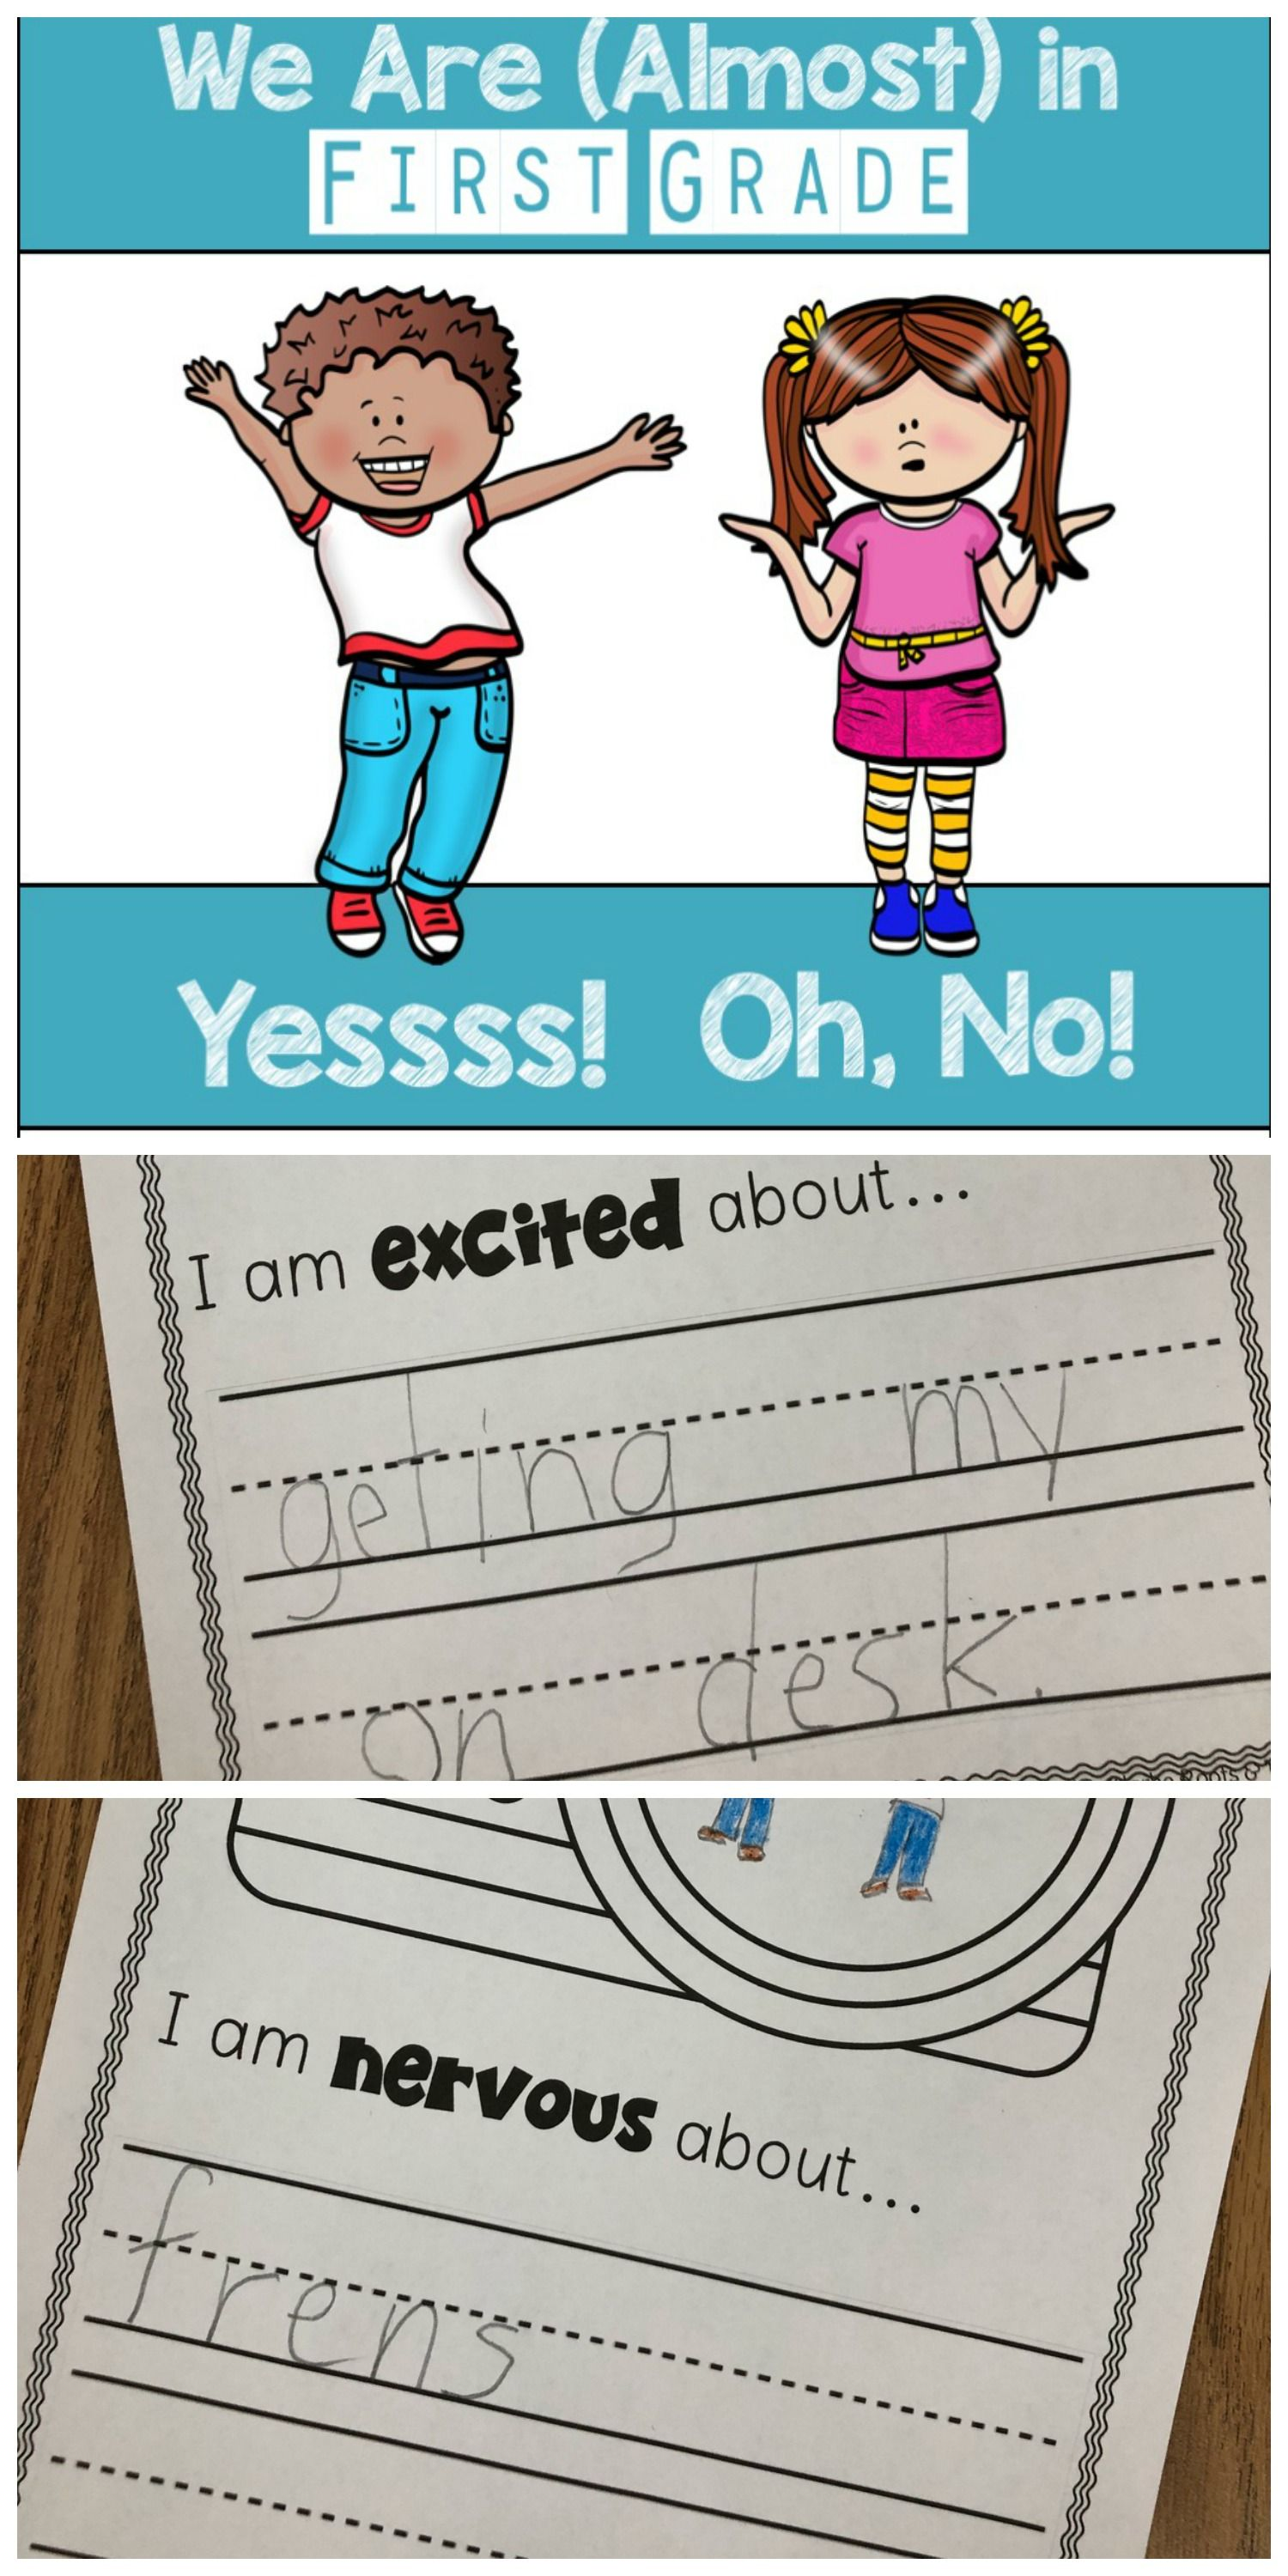 We Are Almost In First Grade